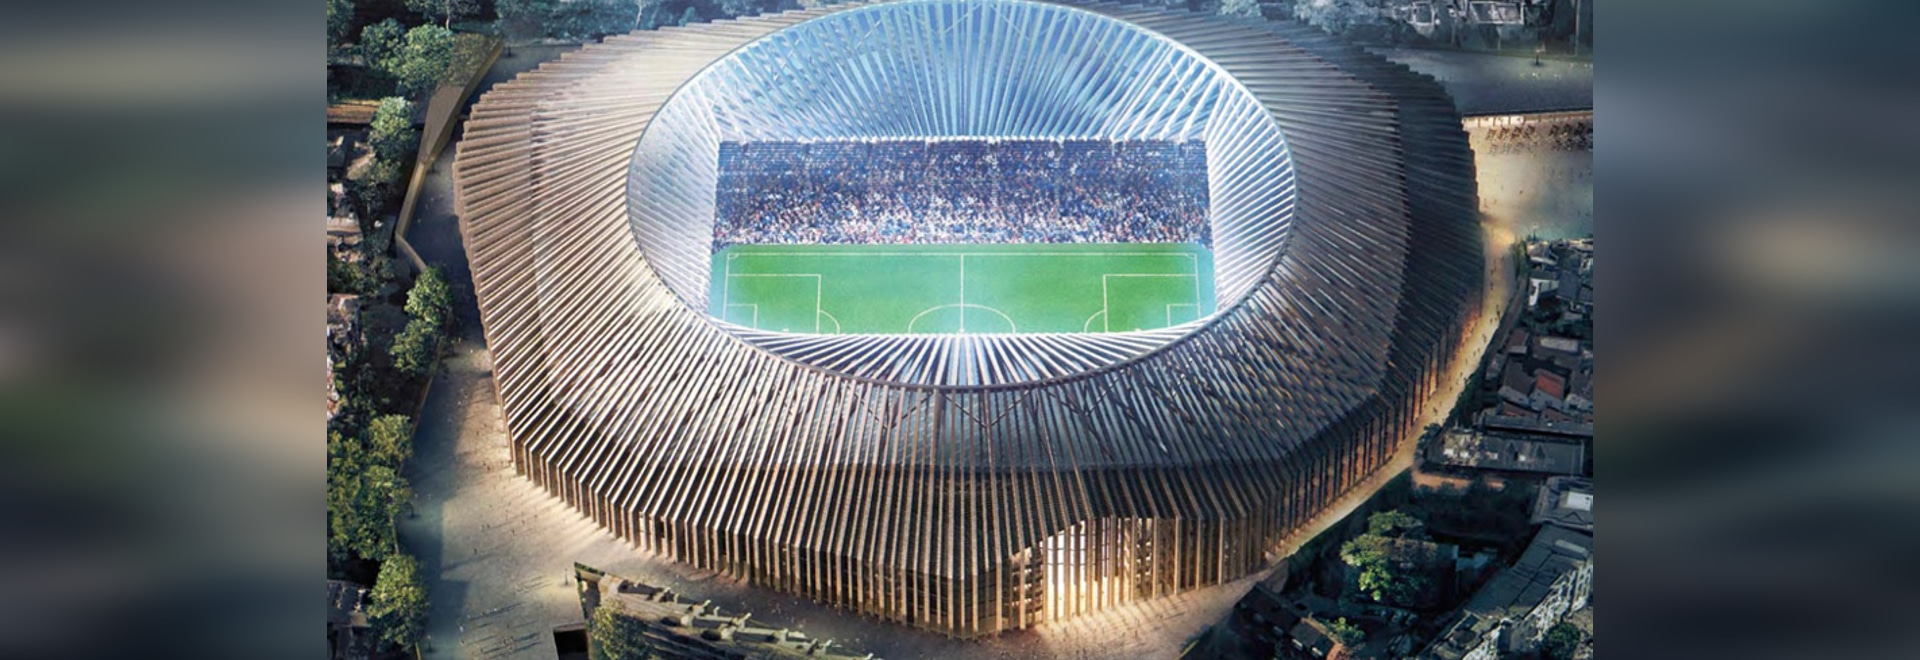 This week, designers flocked to Miami and Herzog & de Meuron unveiled Chelsea FC's new stadium